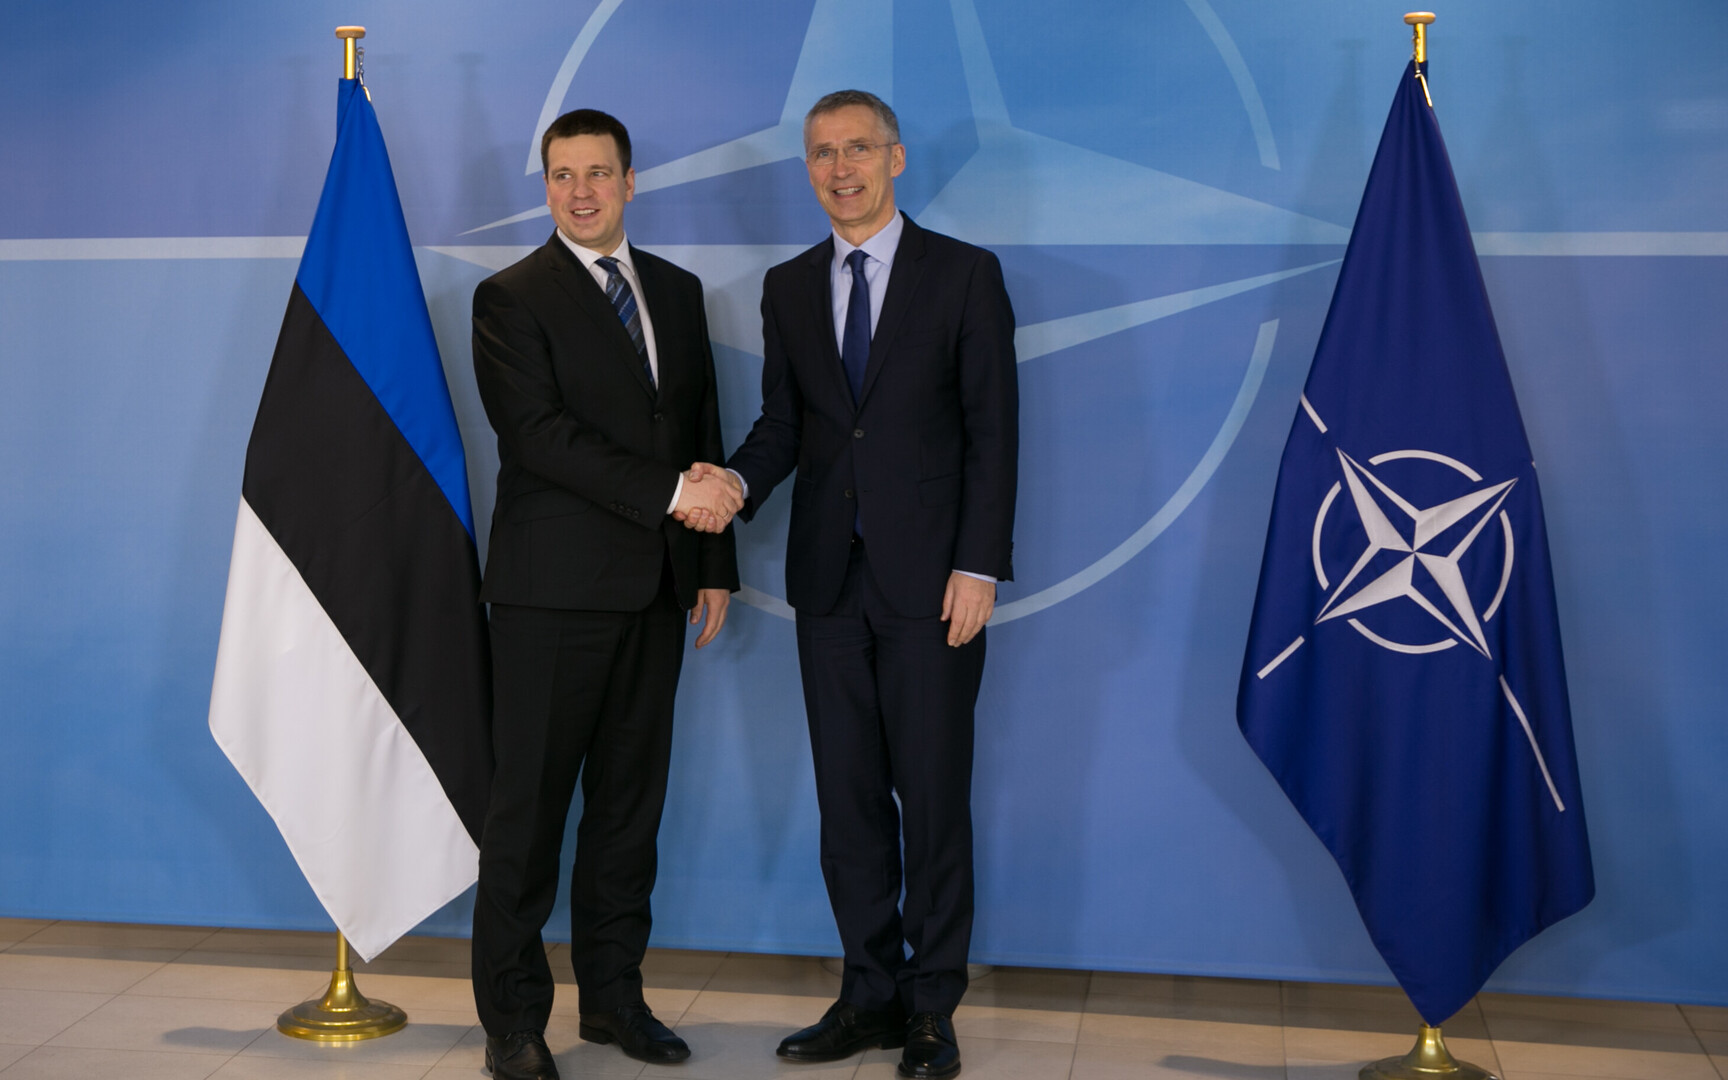 ratas to nato secretary general is a committed ally to n prime minsiter juumlri ratas nato secretary general jens stoltenberg in brussels 9 2017 source government office